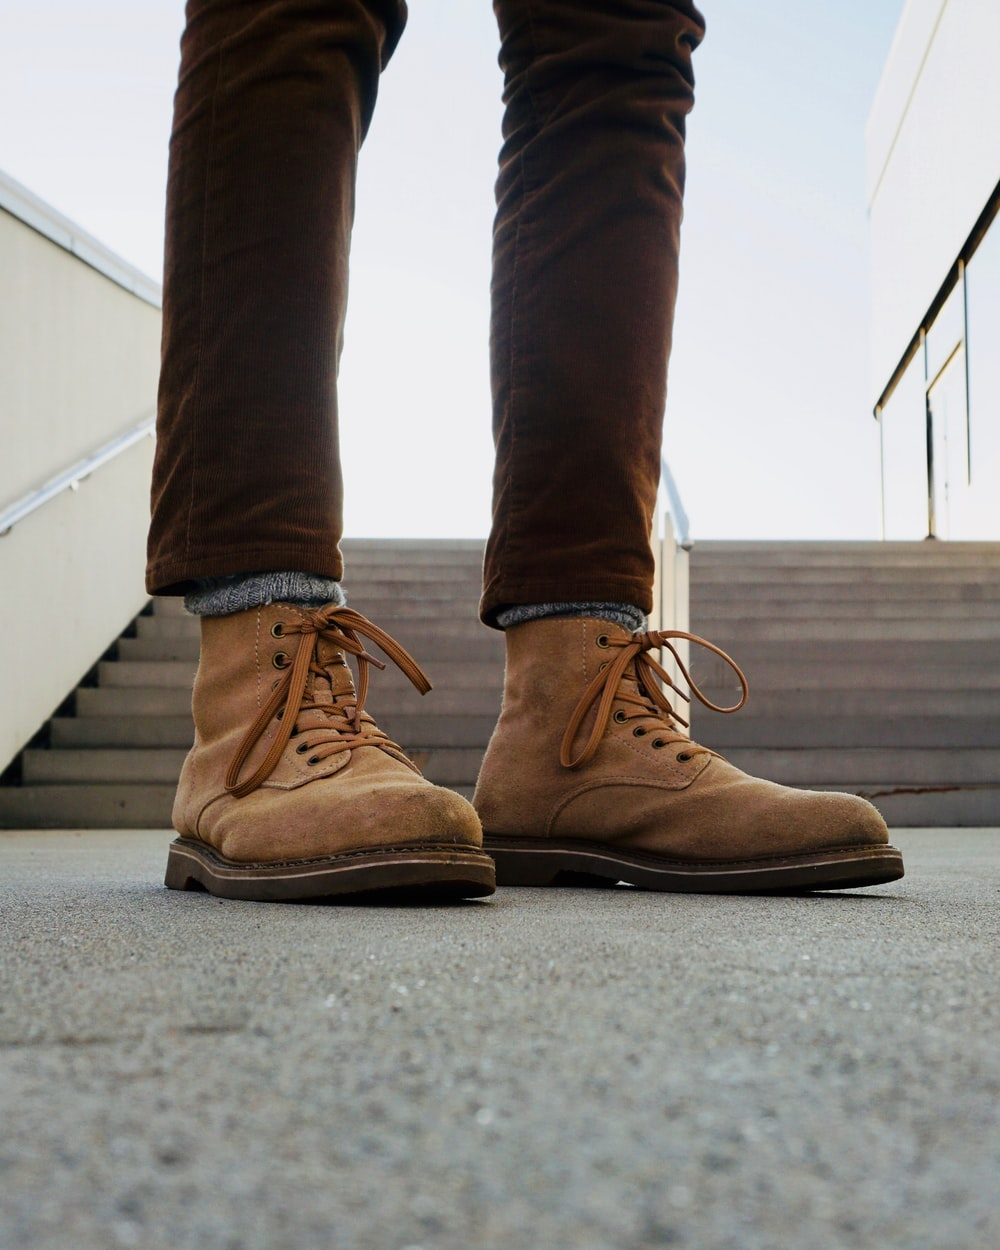 person wearing brown leather combat boots